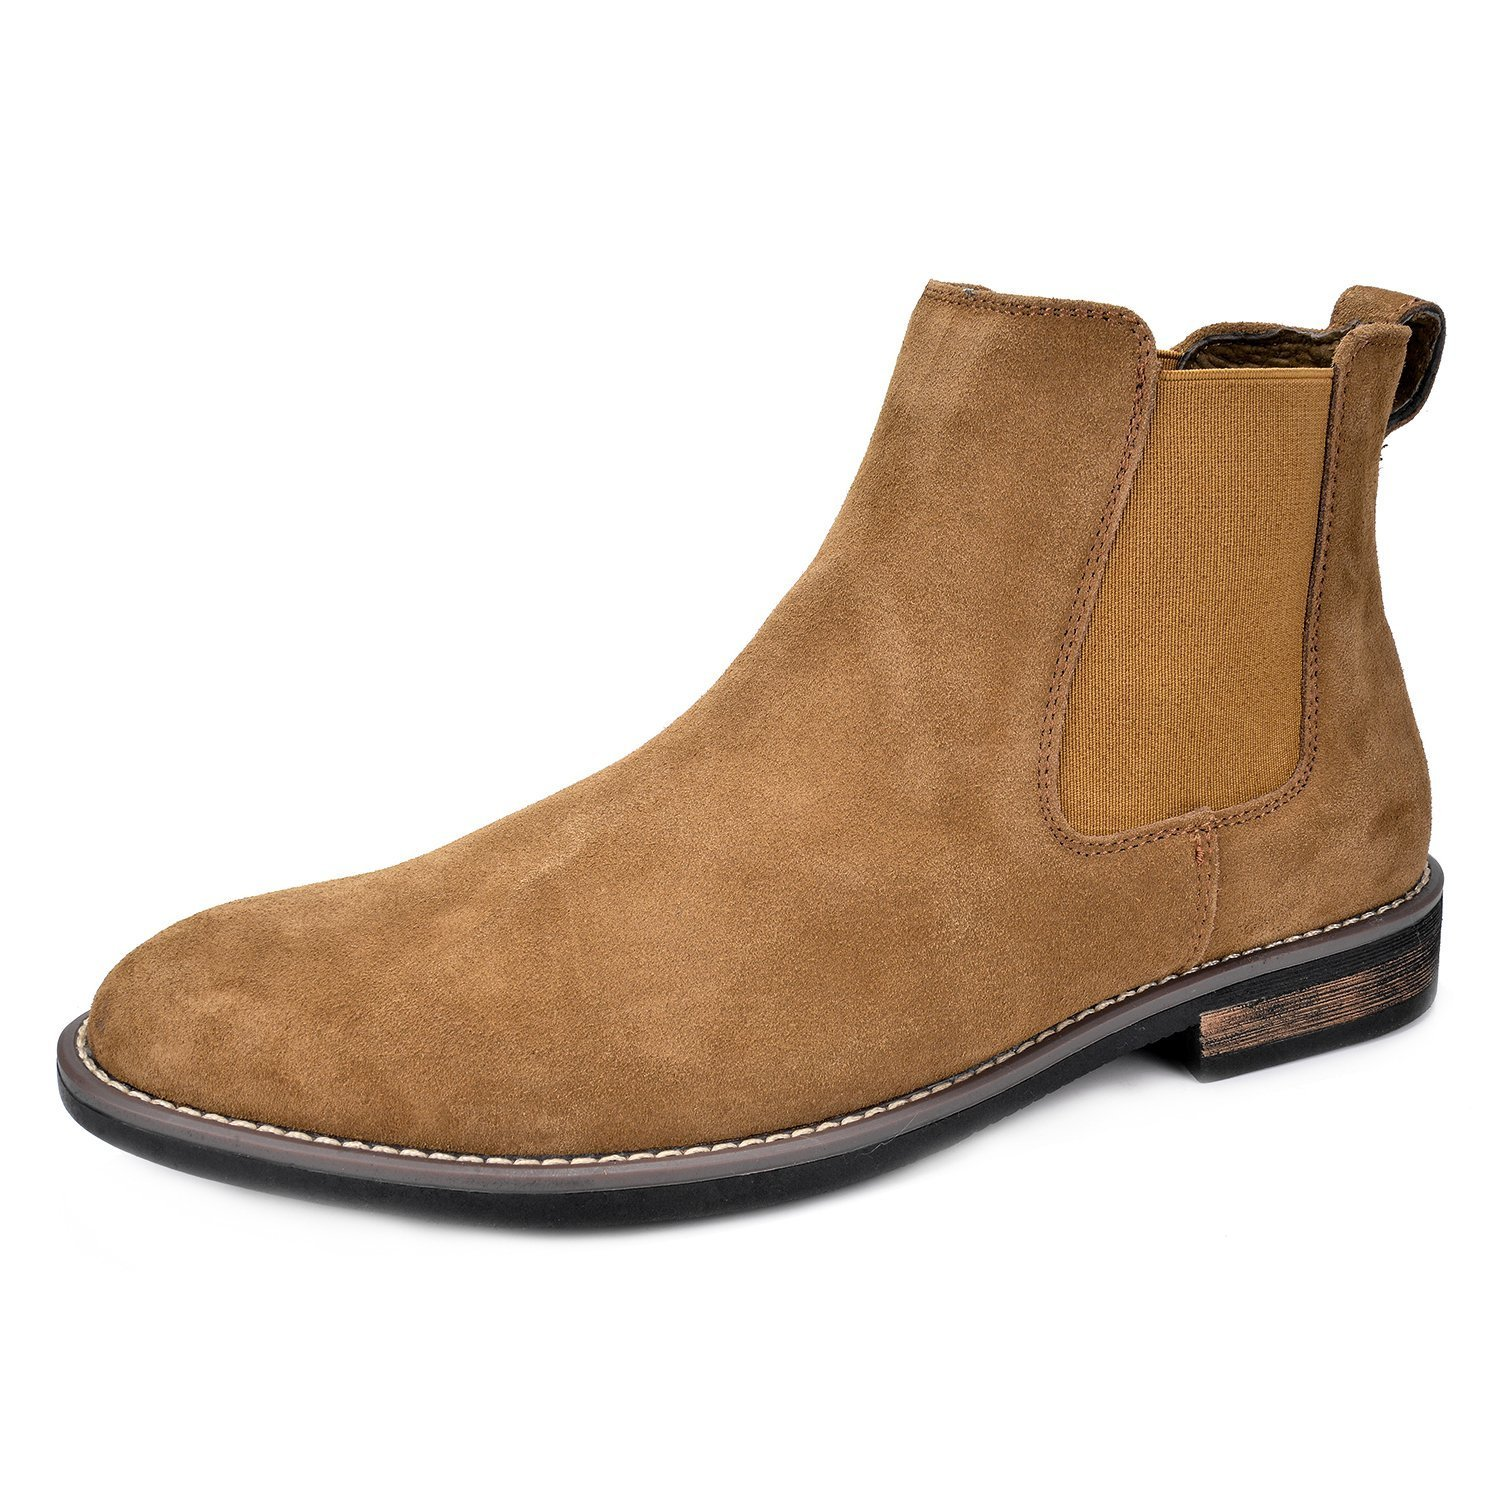 Bruno Marc Men's Urban-06 Tan Suede Leather Chukka Ankle Boots - 9 M US